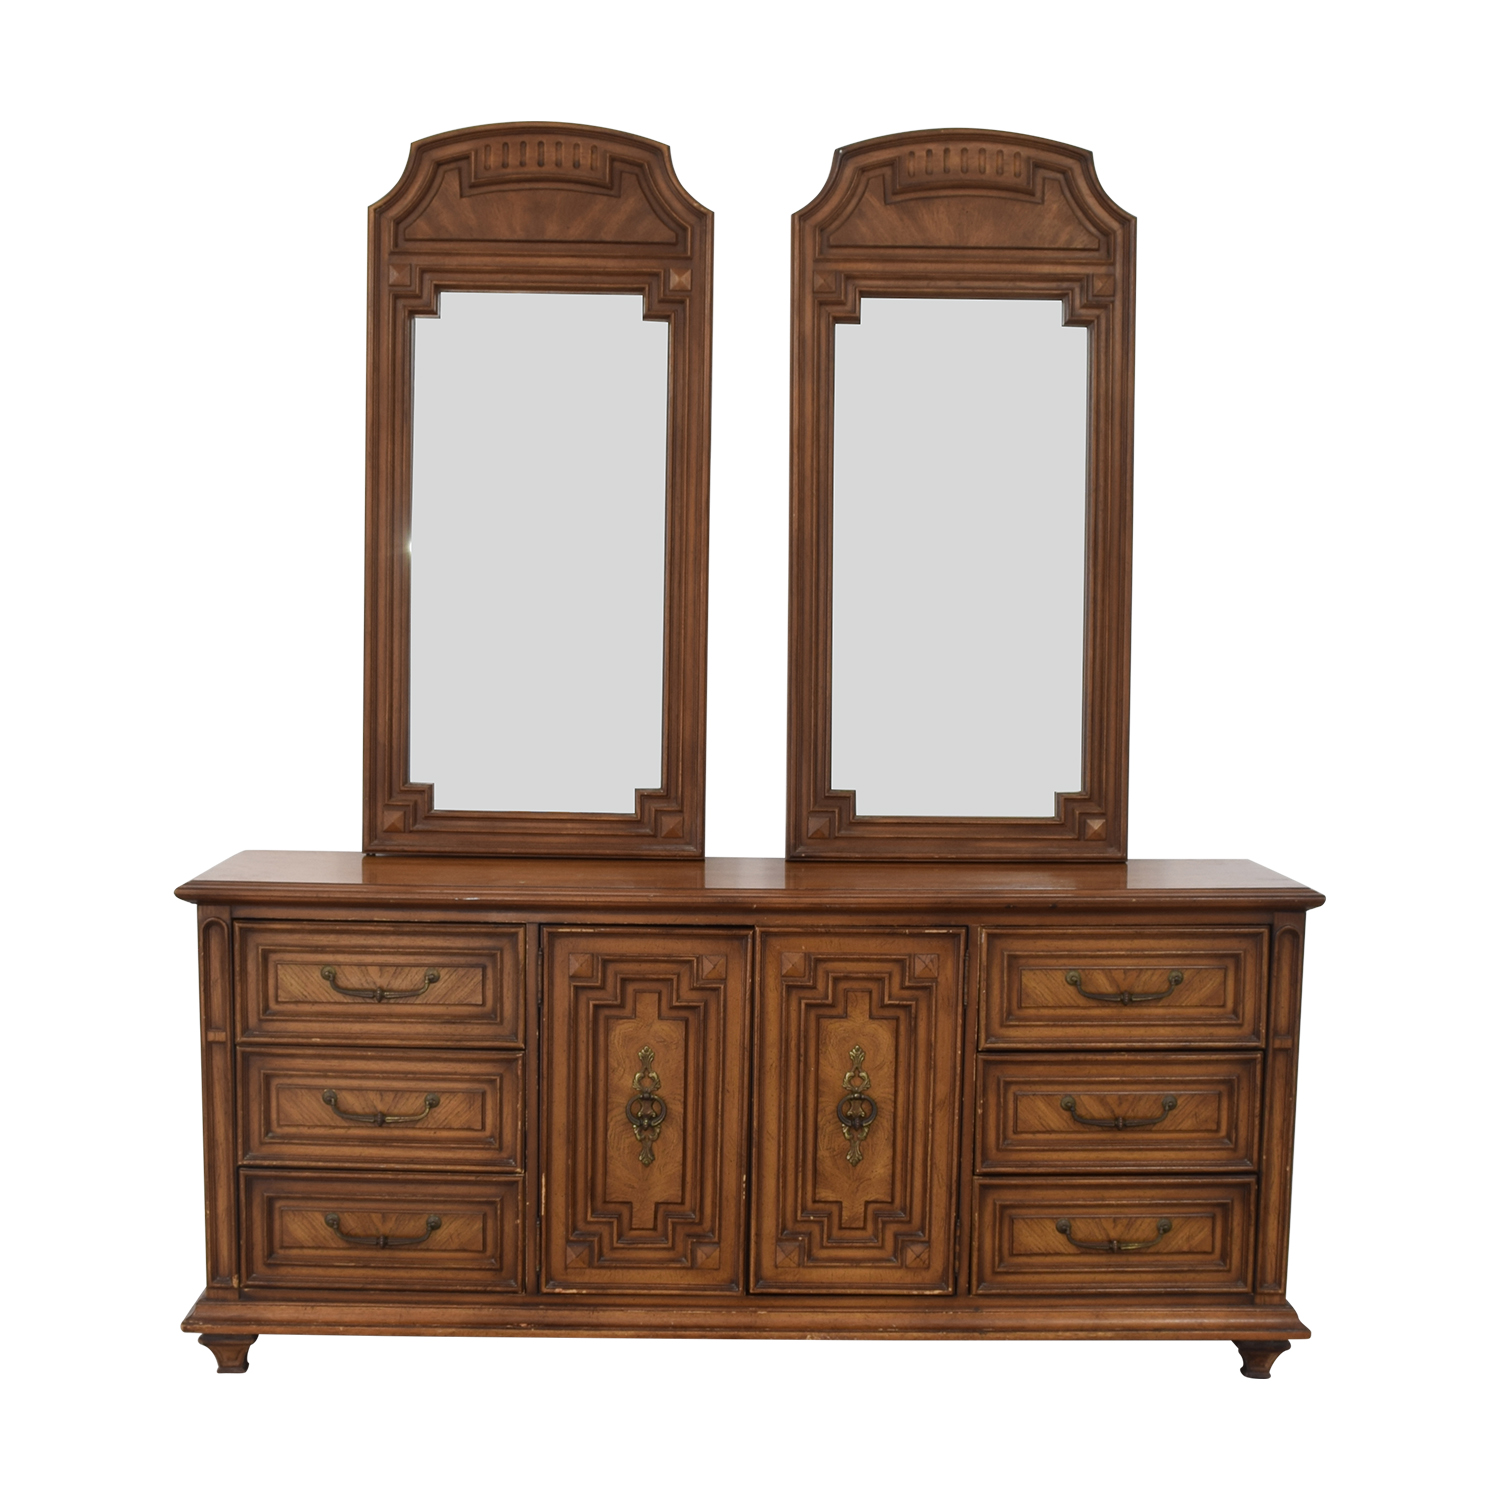 Vintage Dresser with Two Mirrors second hand